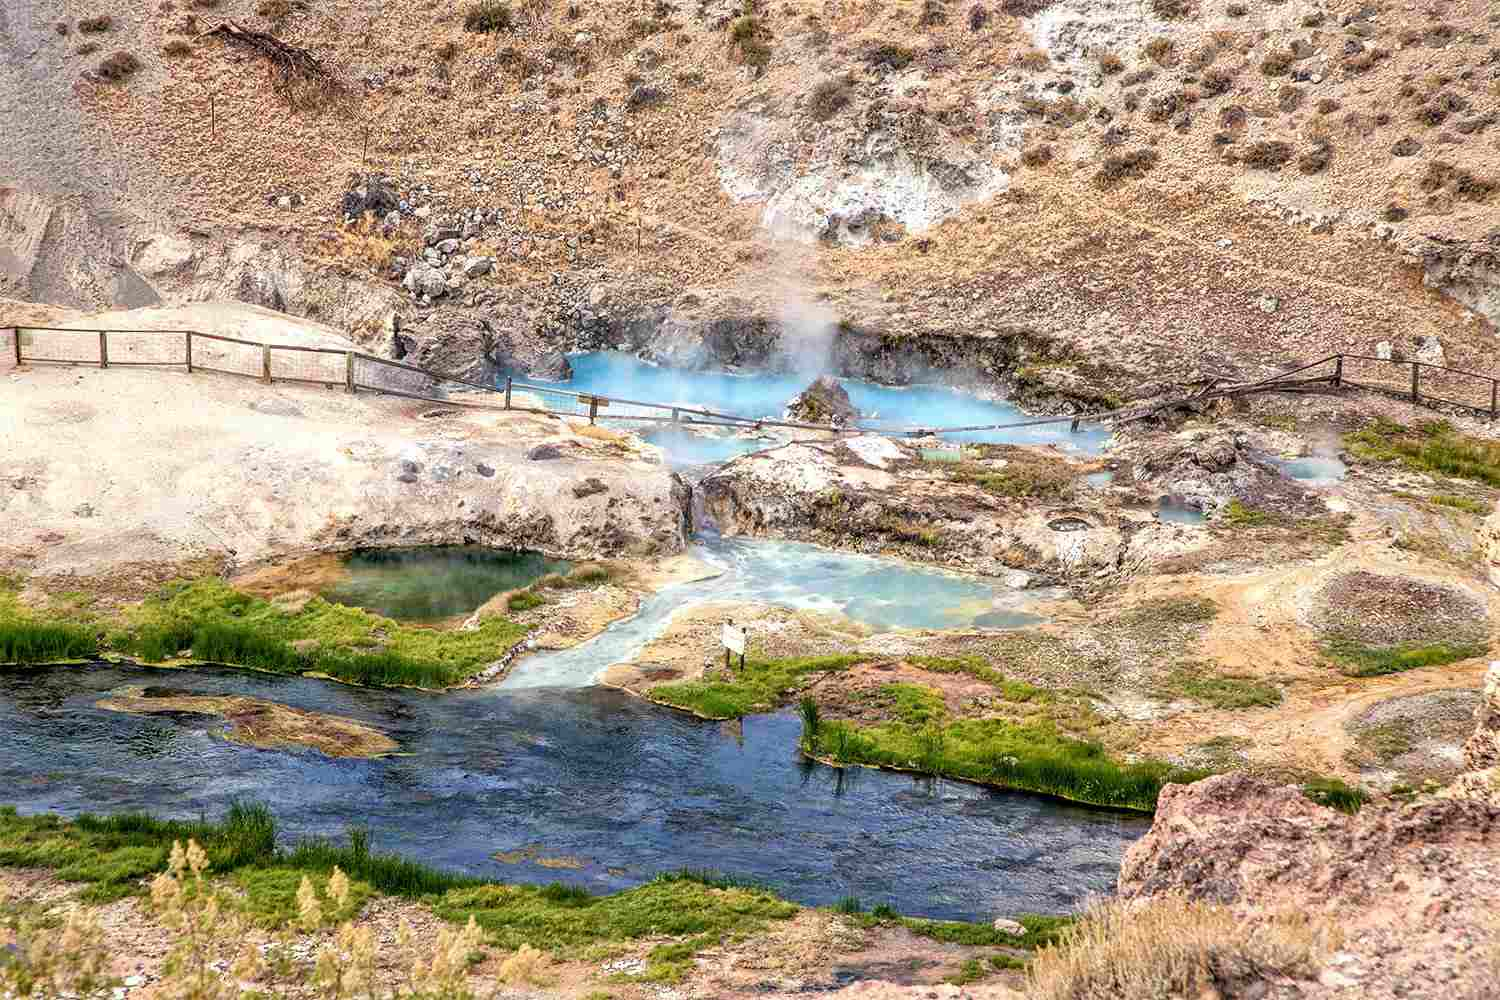 Steam coming off the hot springs at Hot Creek Gulch